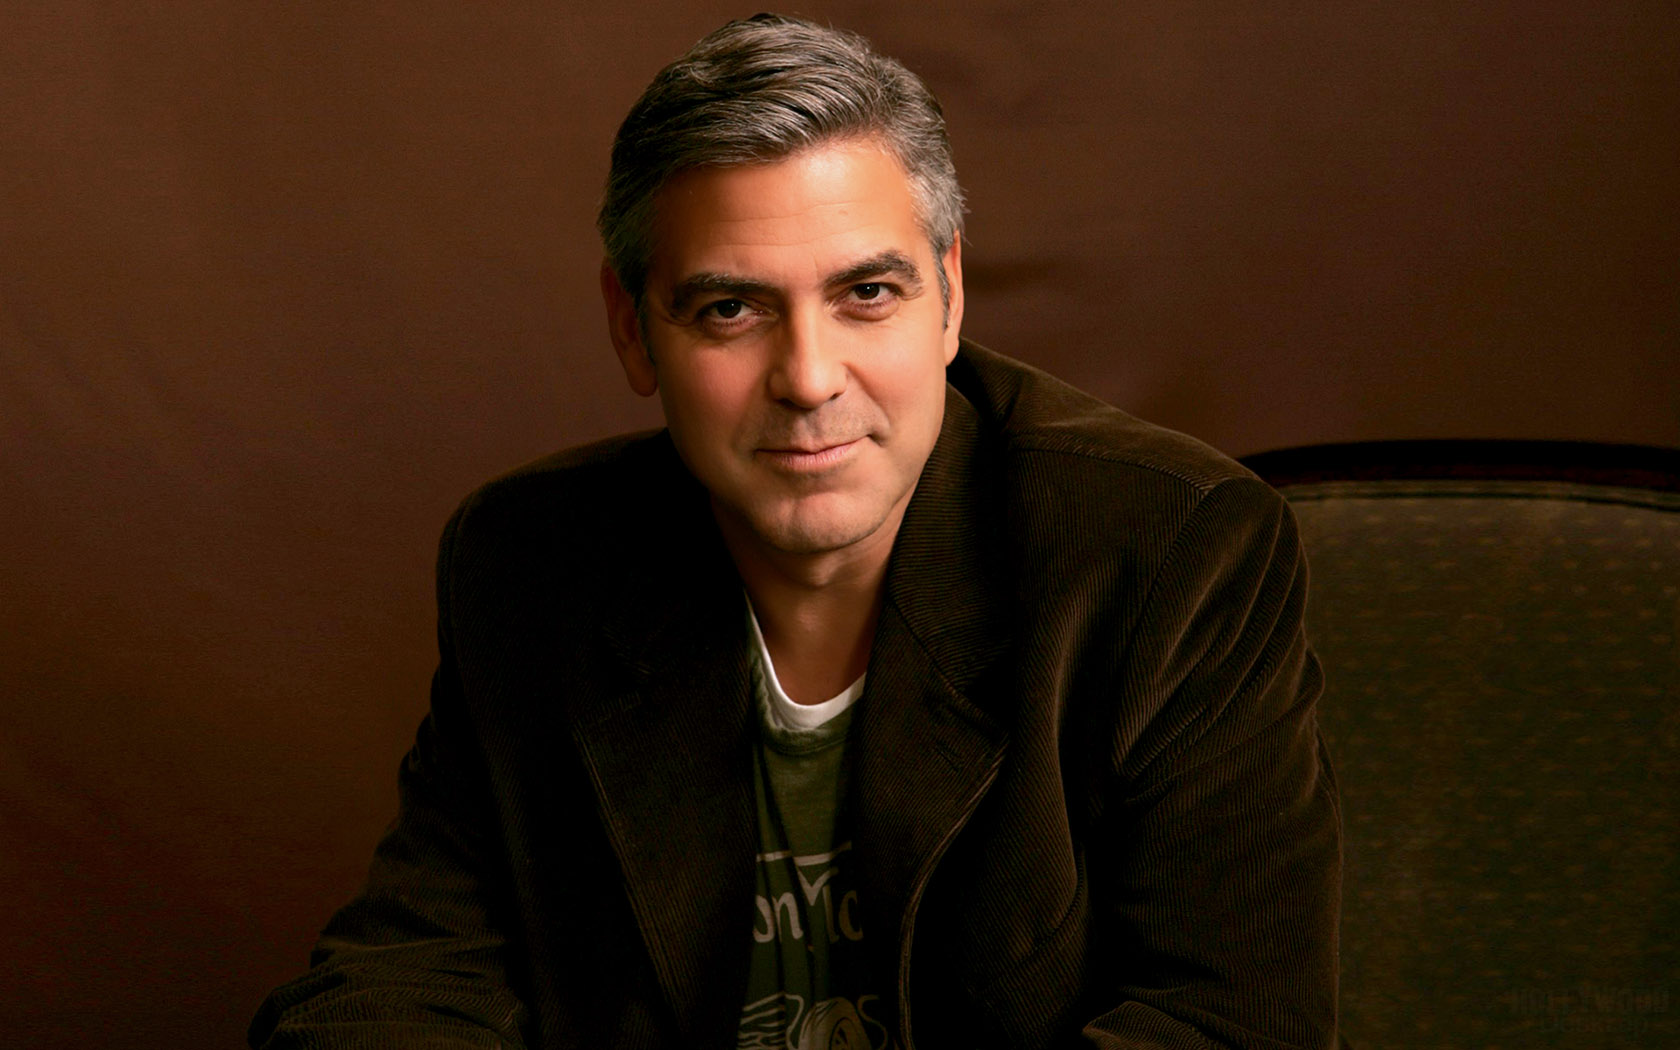 george clooney imagens George Clooney HD wallpaper and background 1680x1050